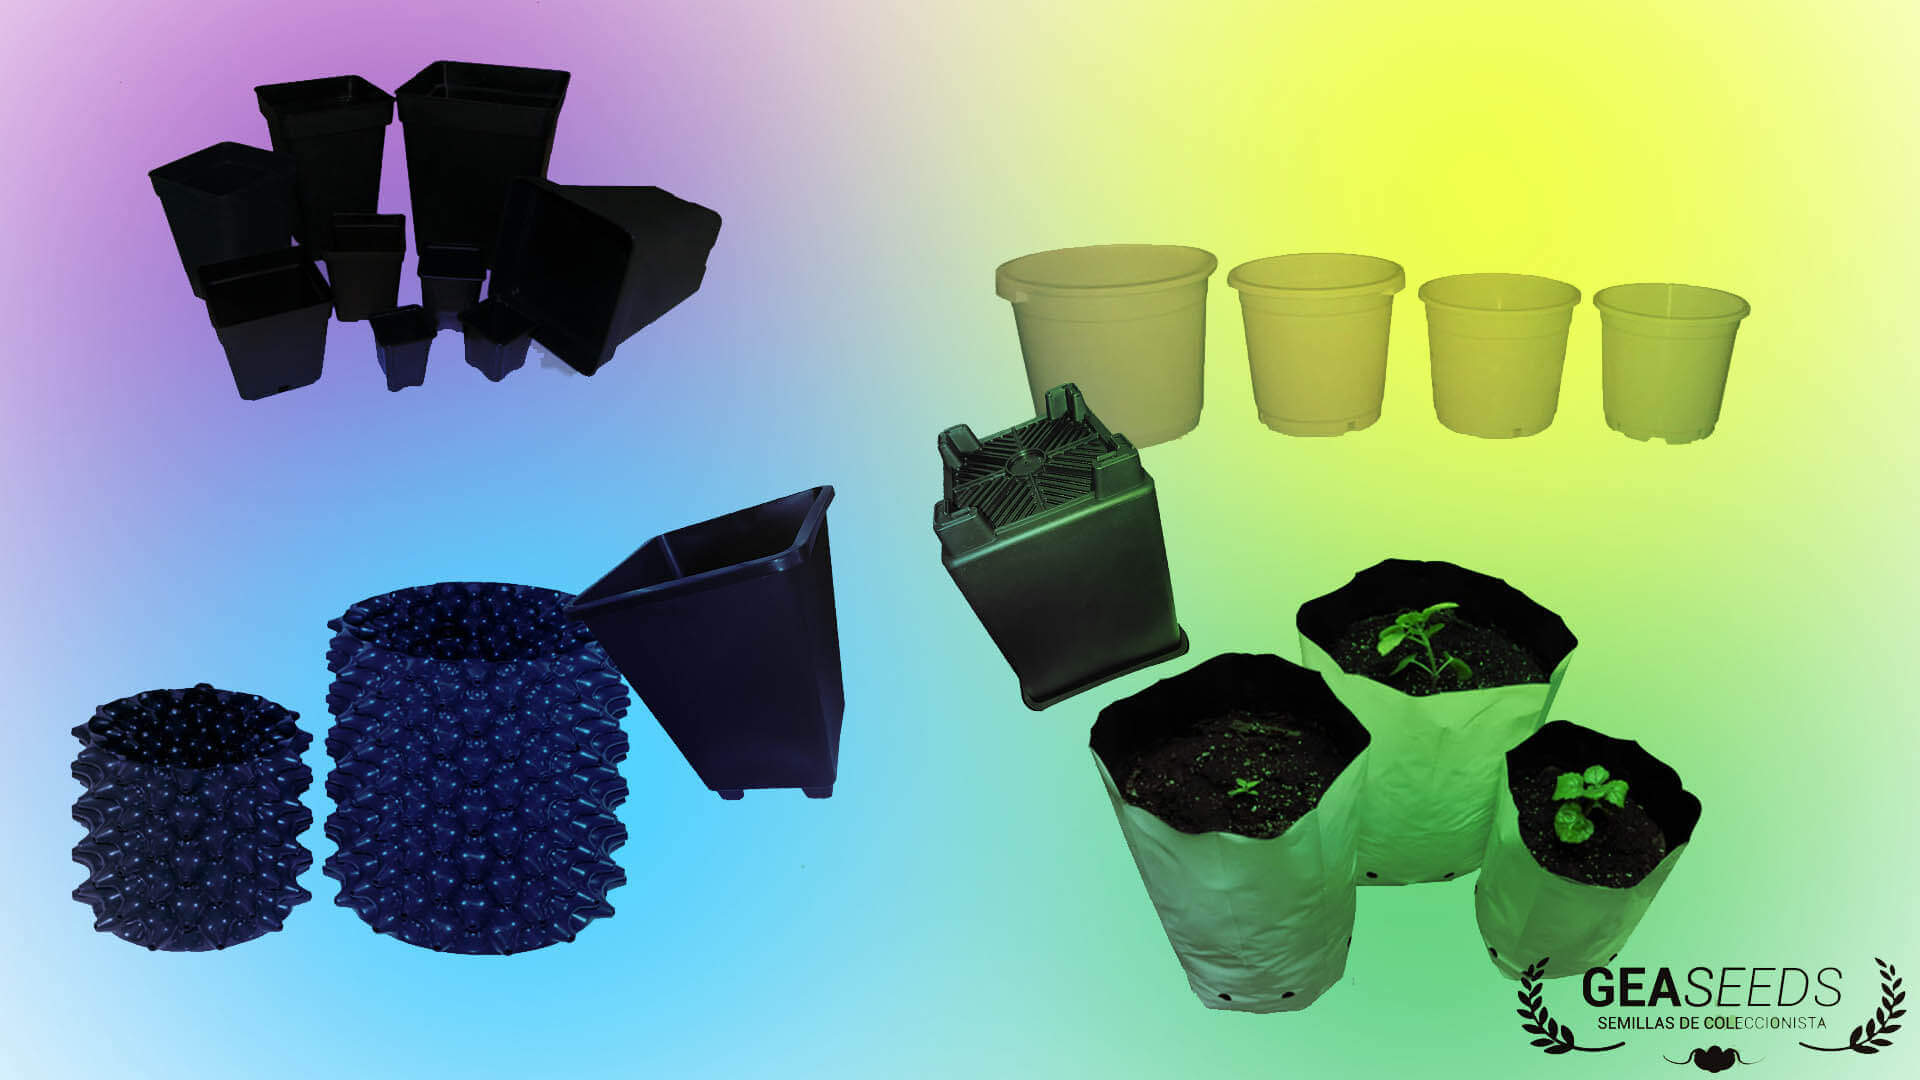 Pots for cultivation